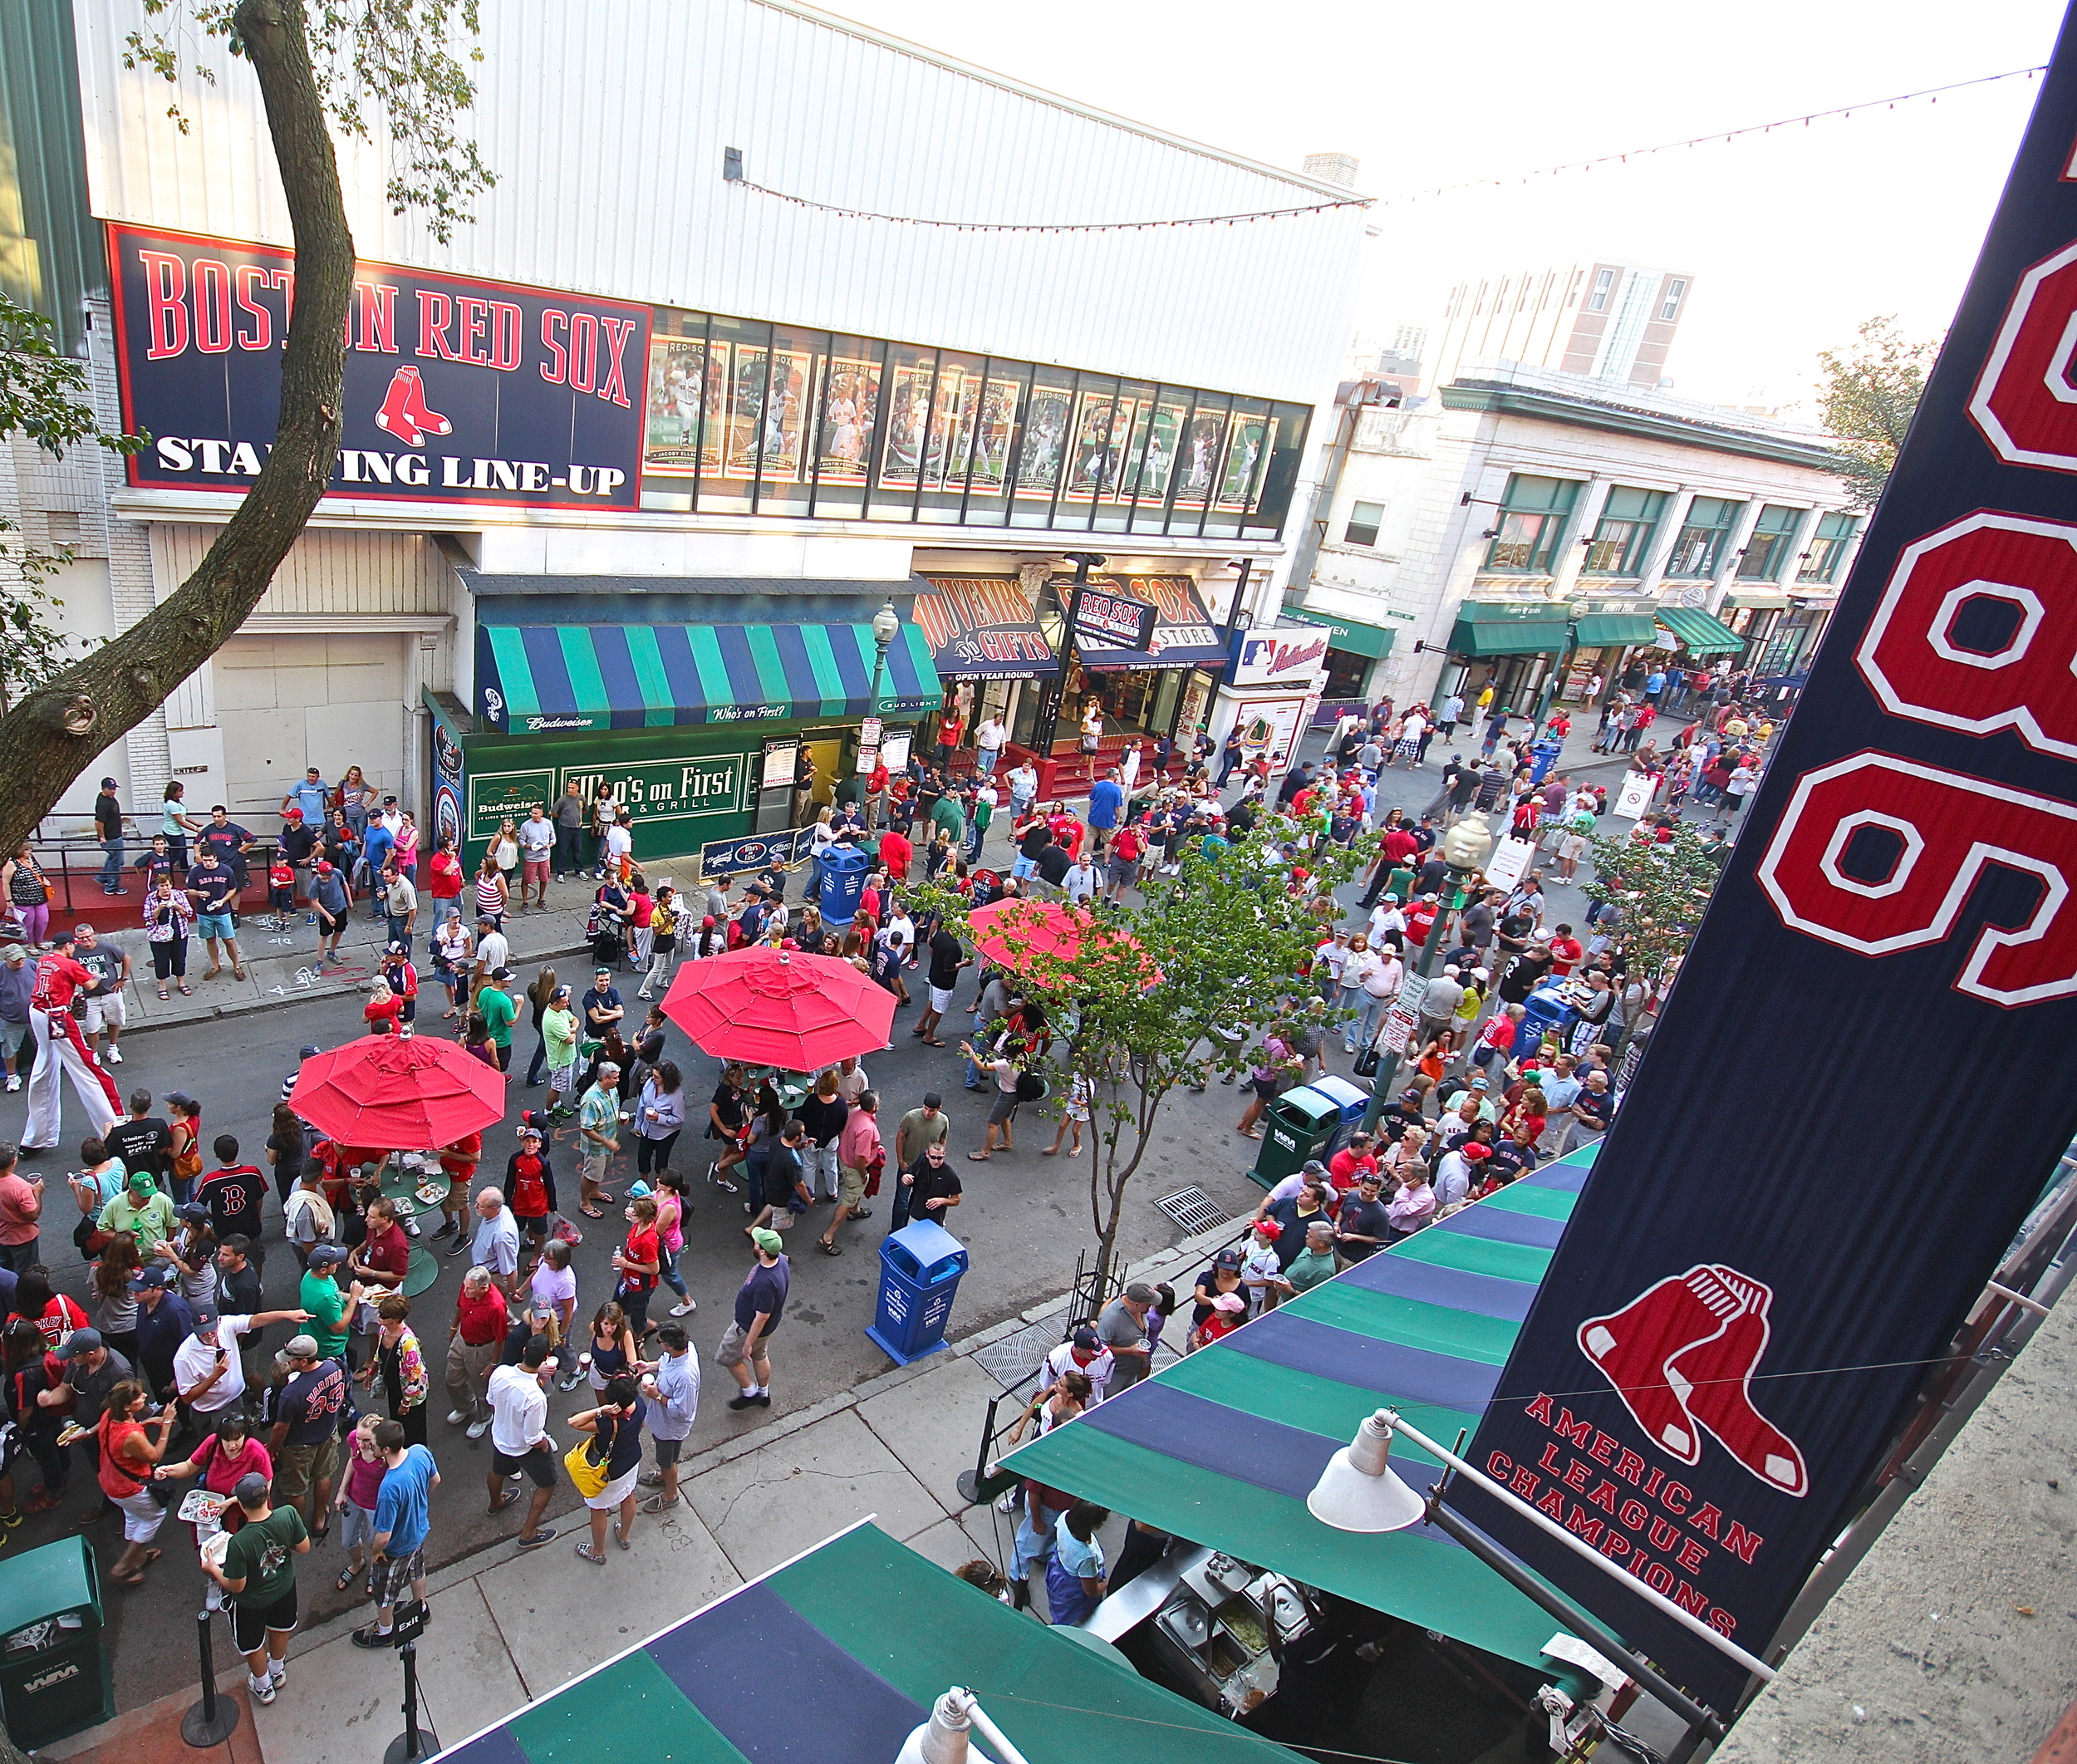 Yawkey Way is filling up